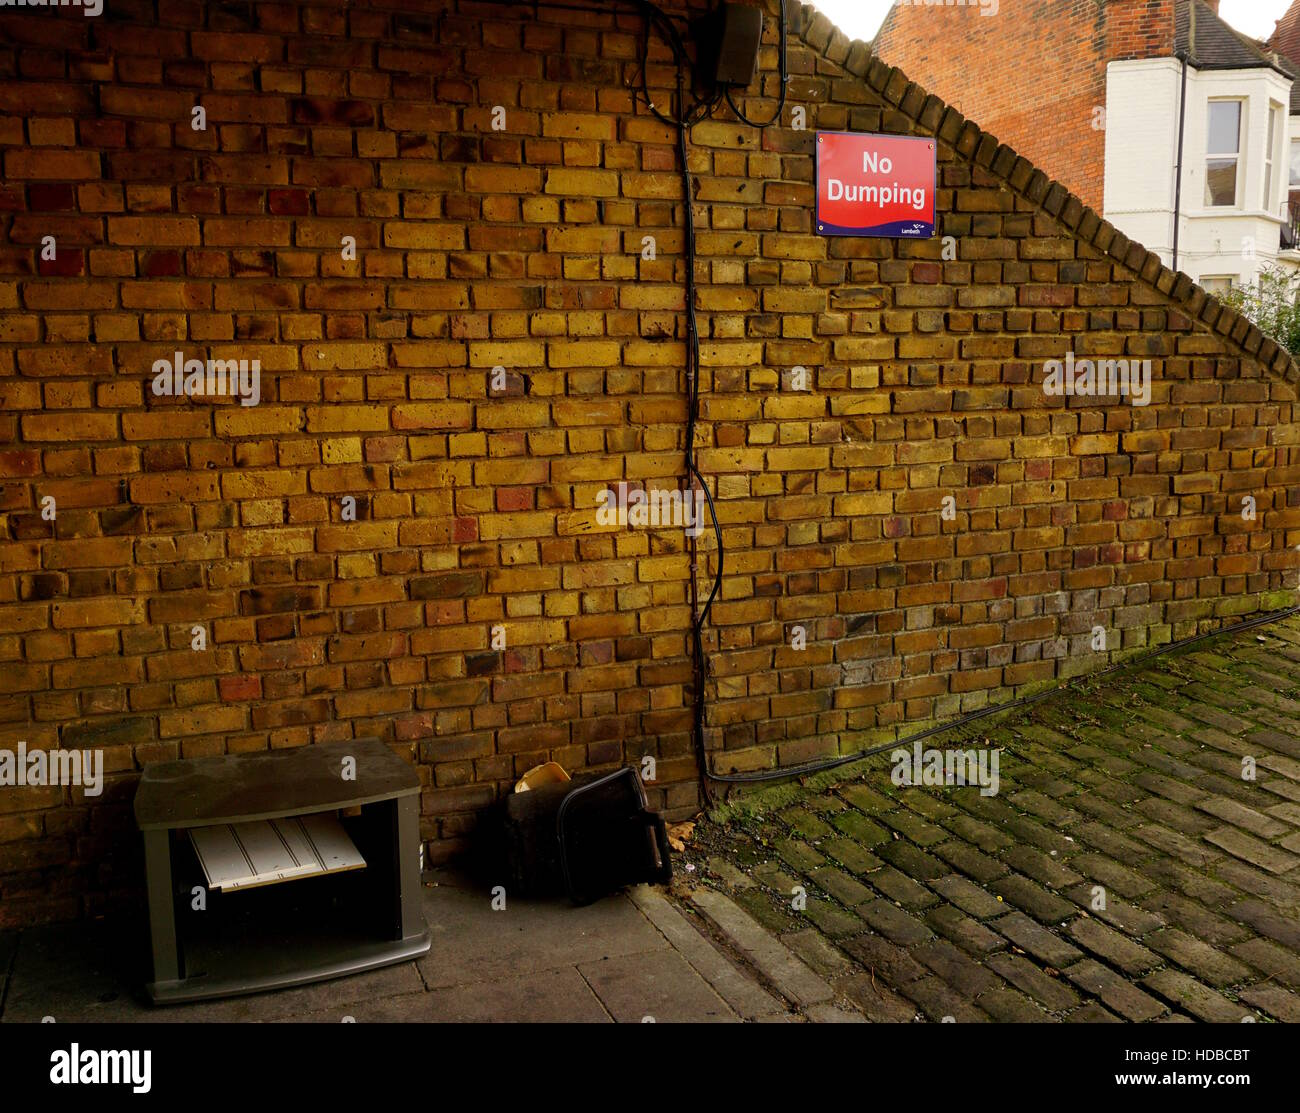 Flytipping next to a No Dumping sign - Stock Image